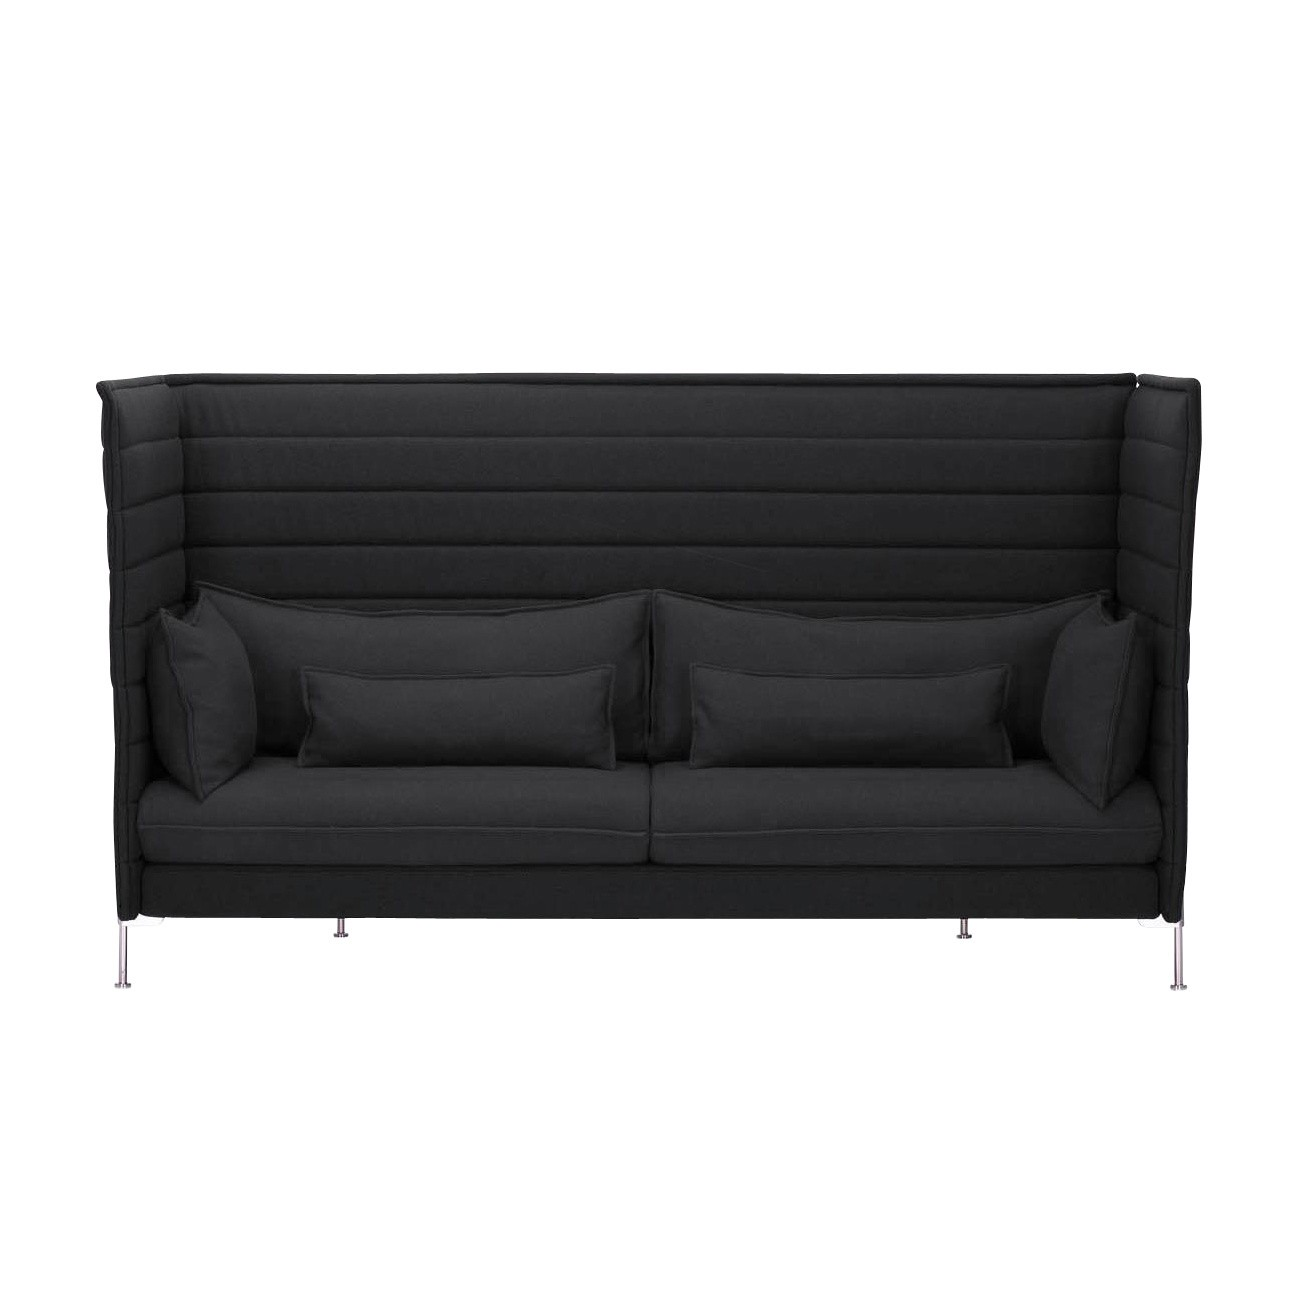 Vitra   Alcove Highback 3 Seater Sofa   Black/frame Chrome/fabric Laser